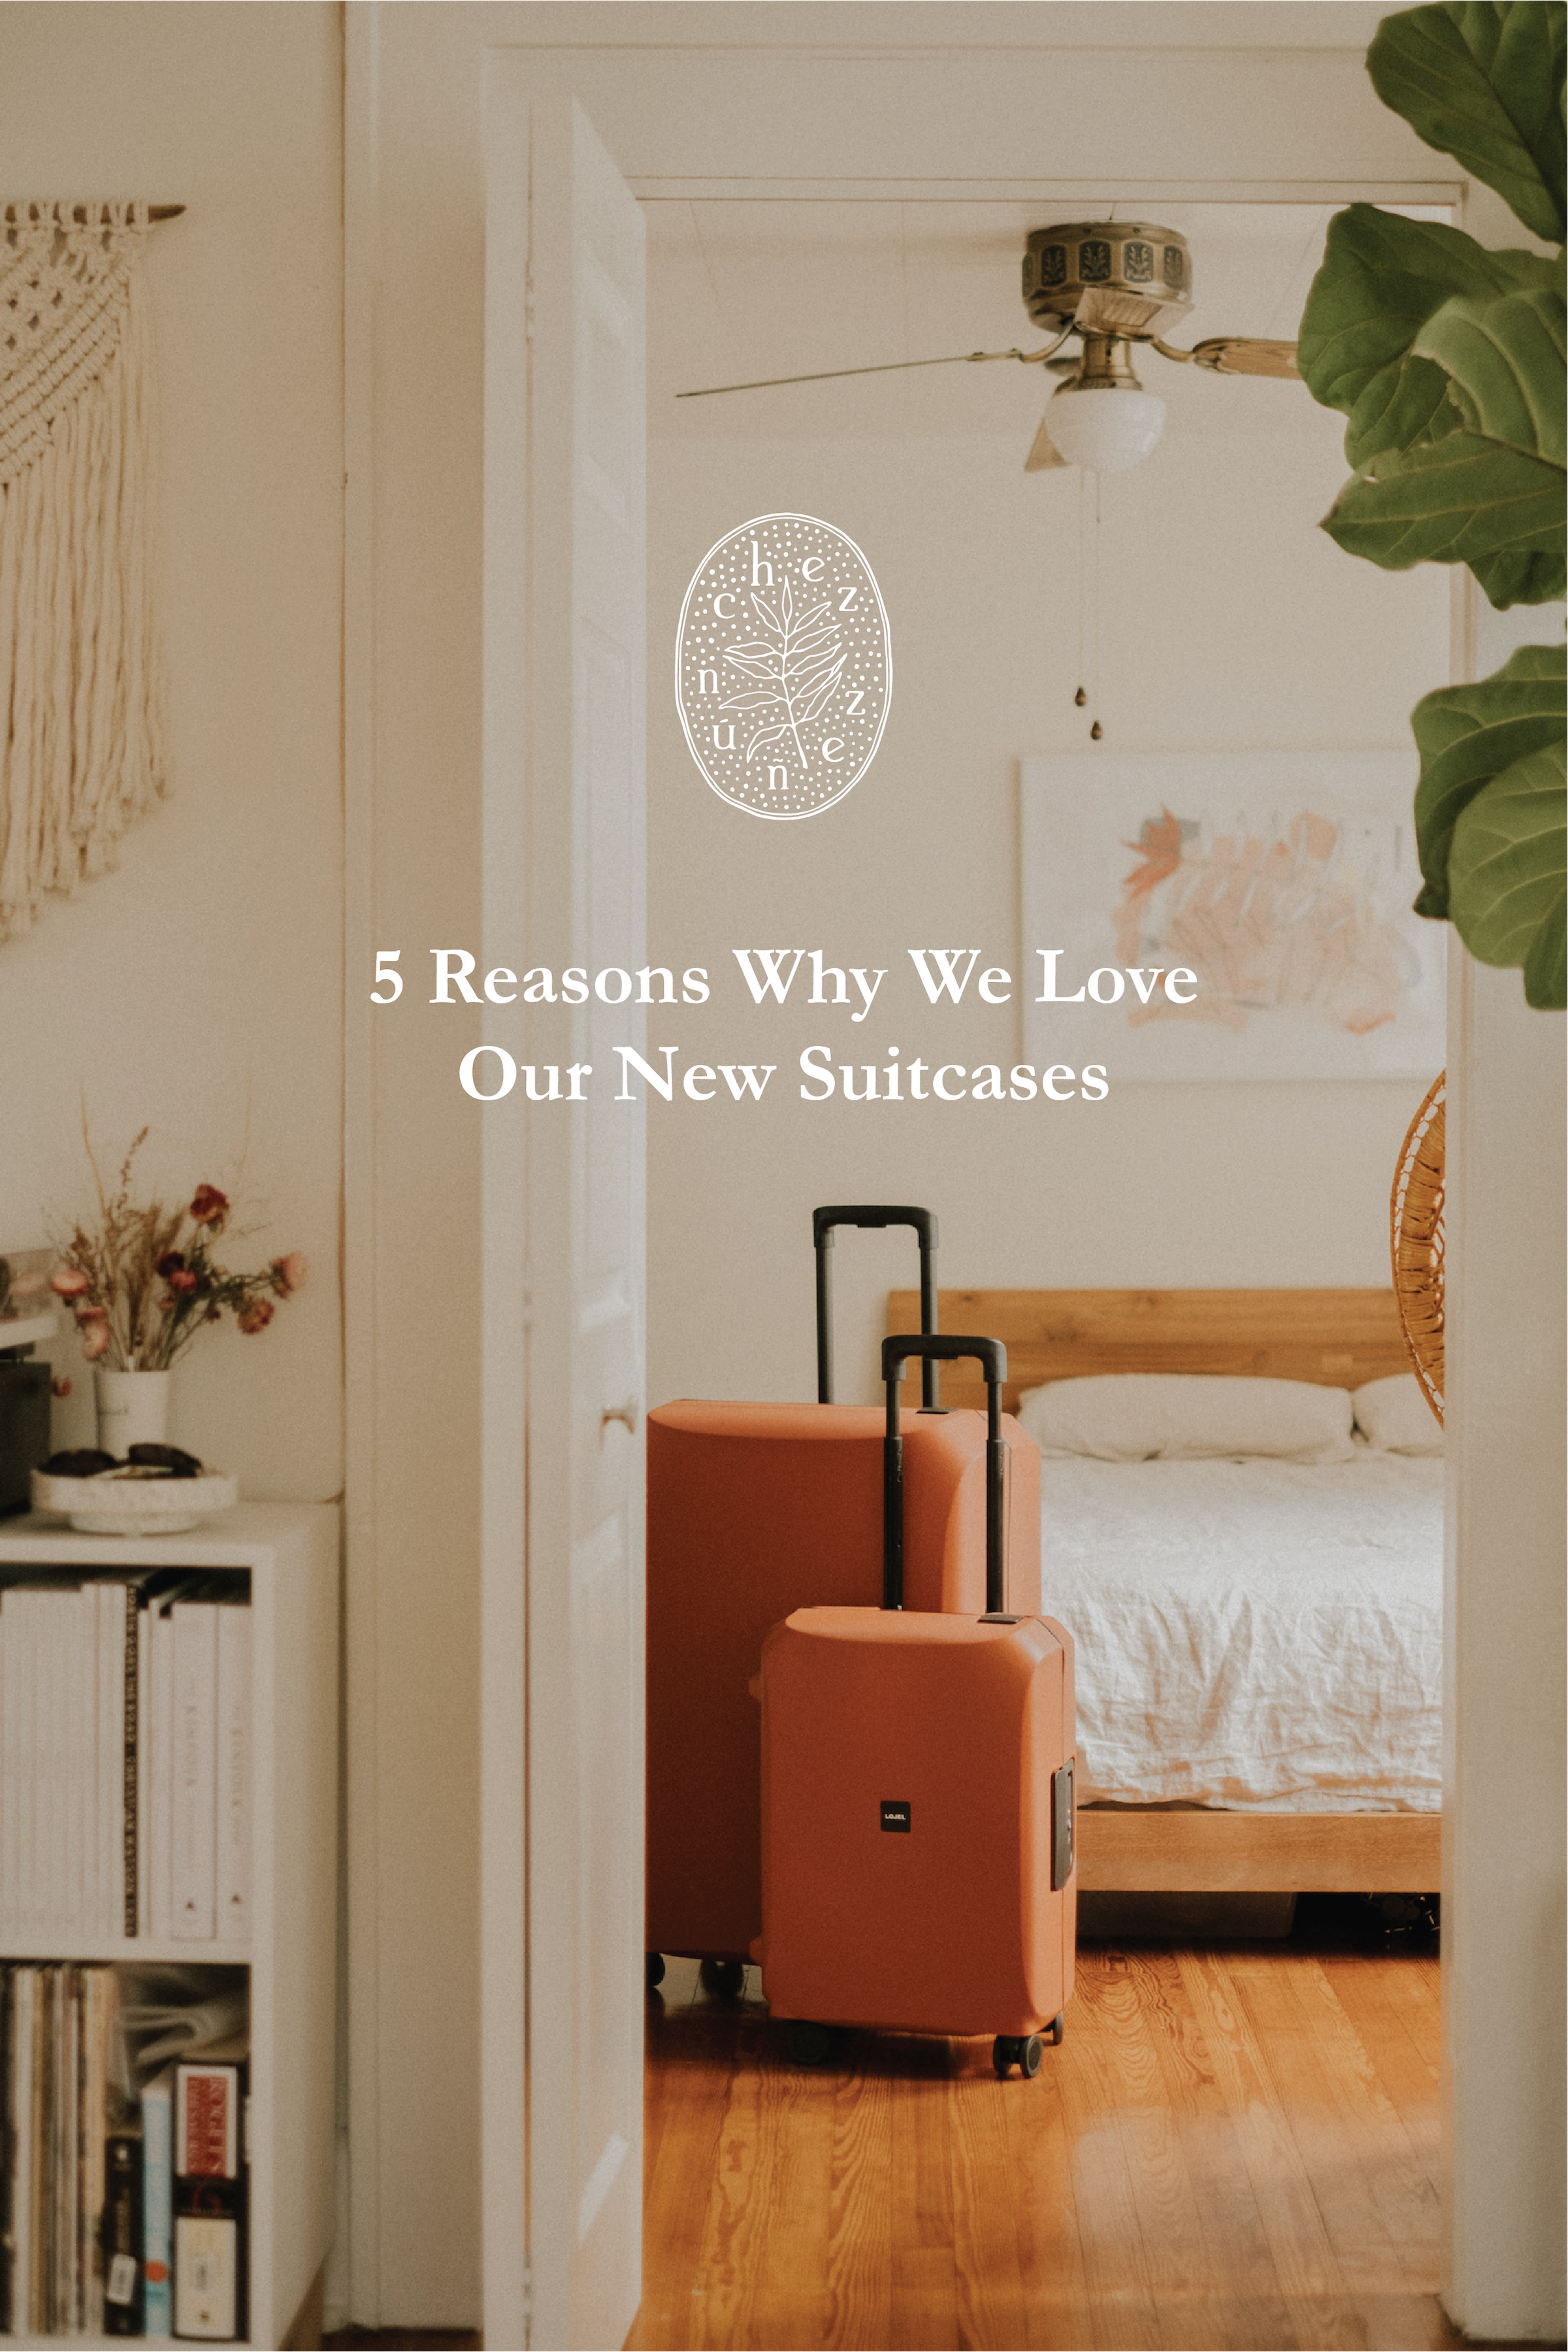 5 Reasons Why We Love Our New Suitcases